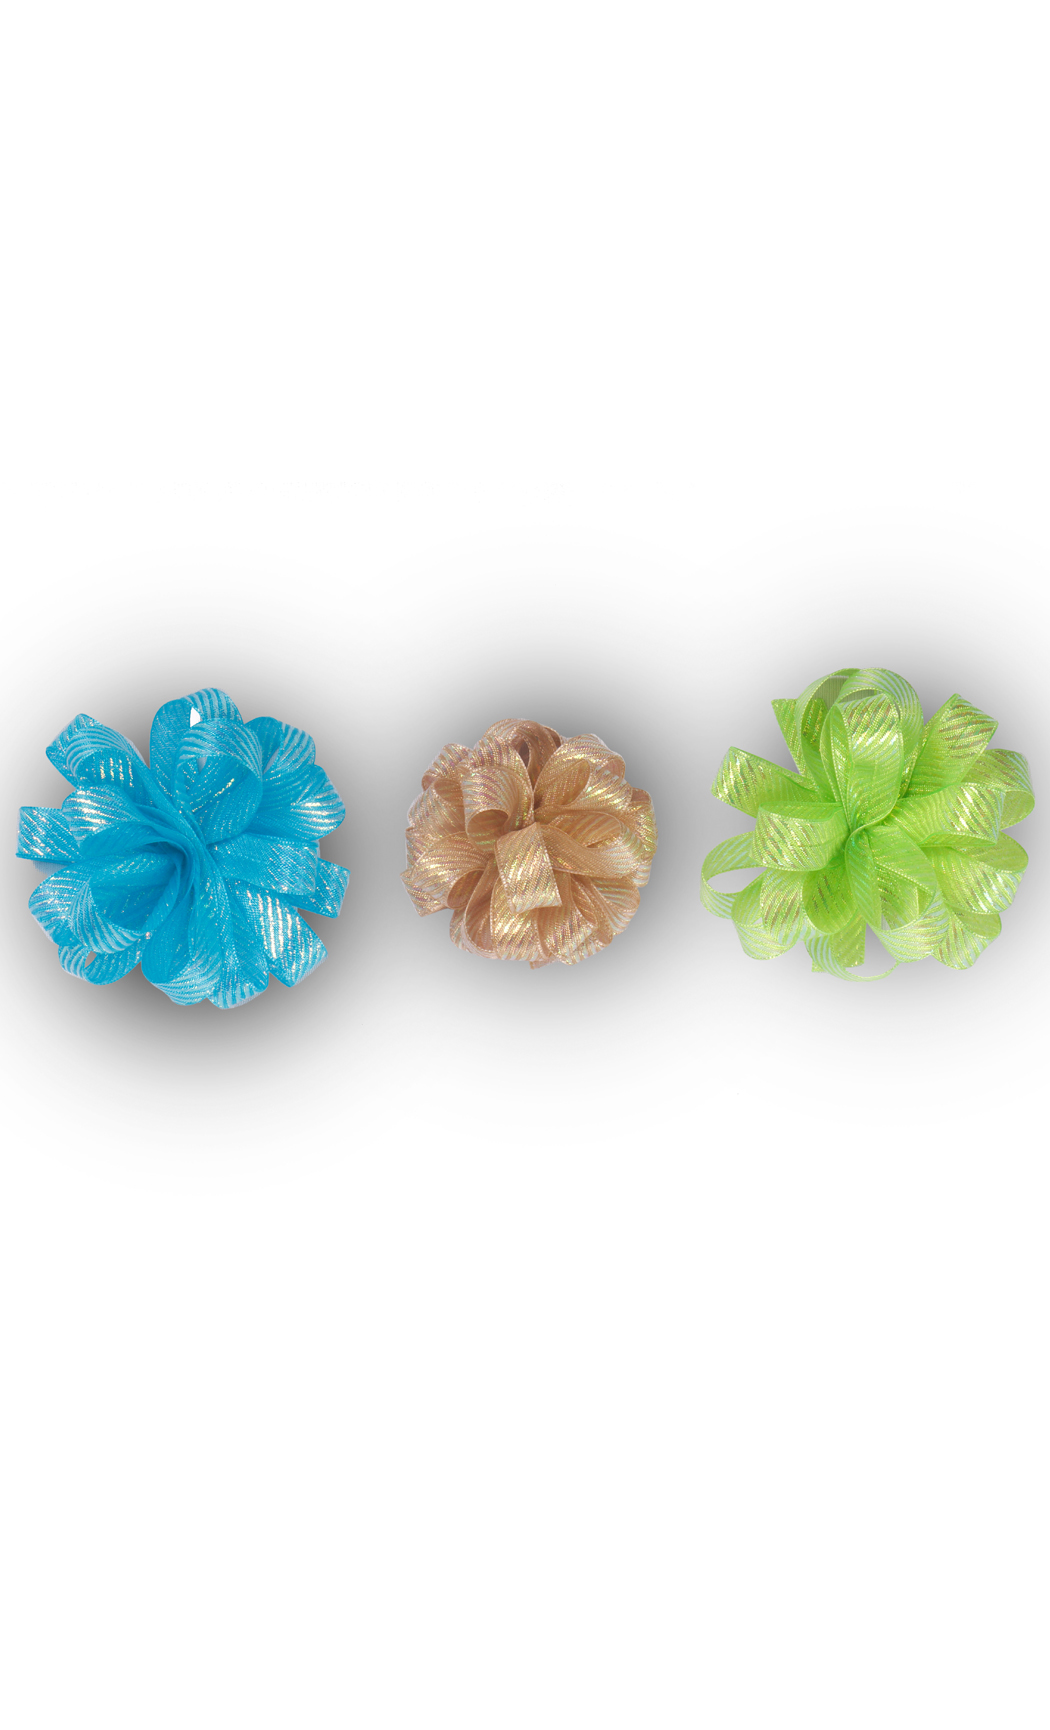 Ready to Stick Iridescent Bows (Set of 3) - Buy Online